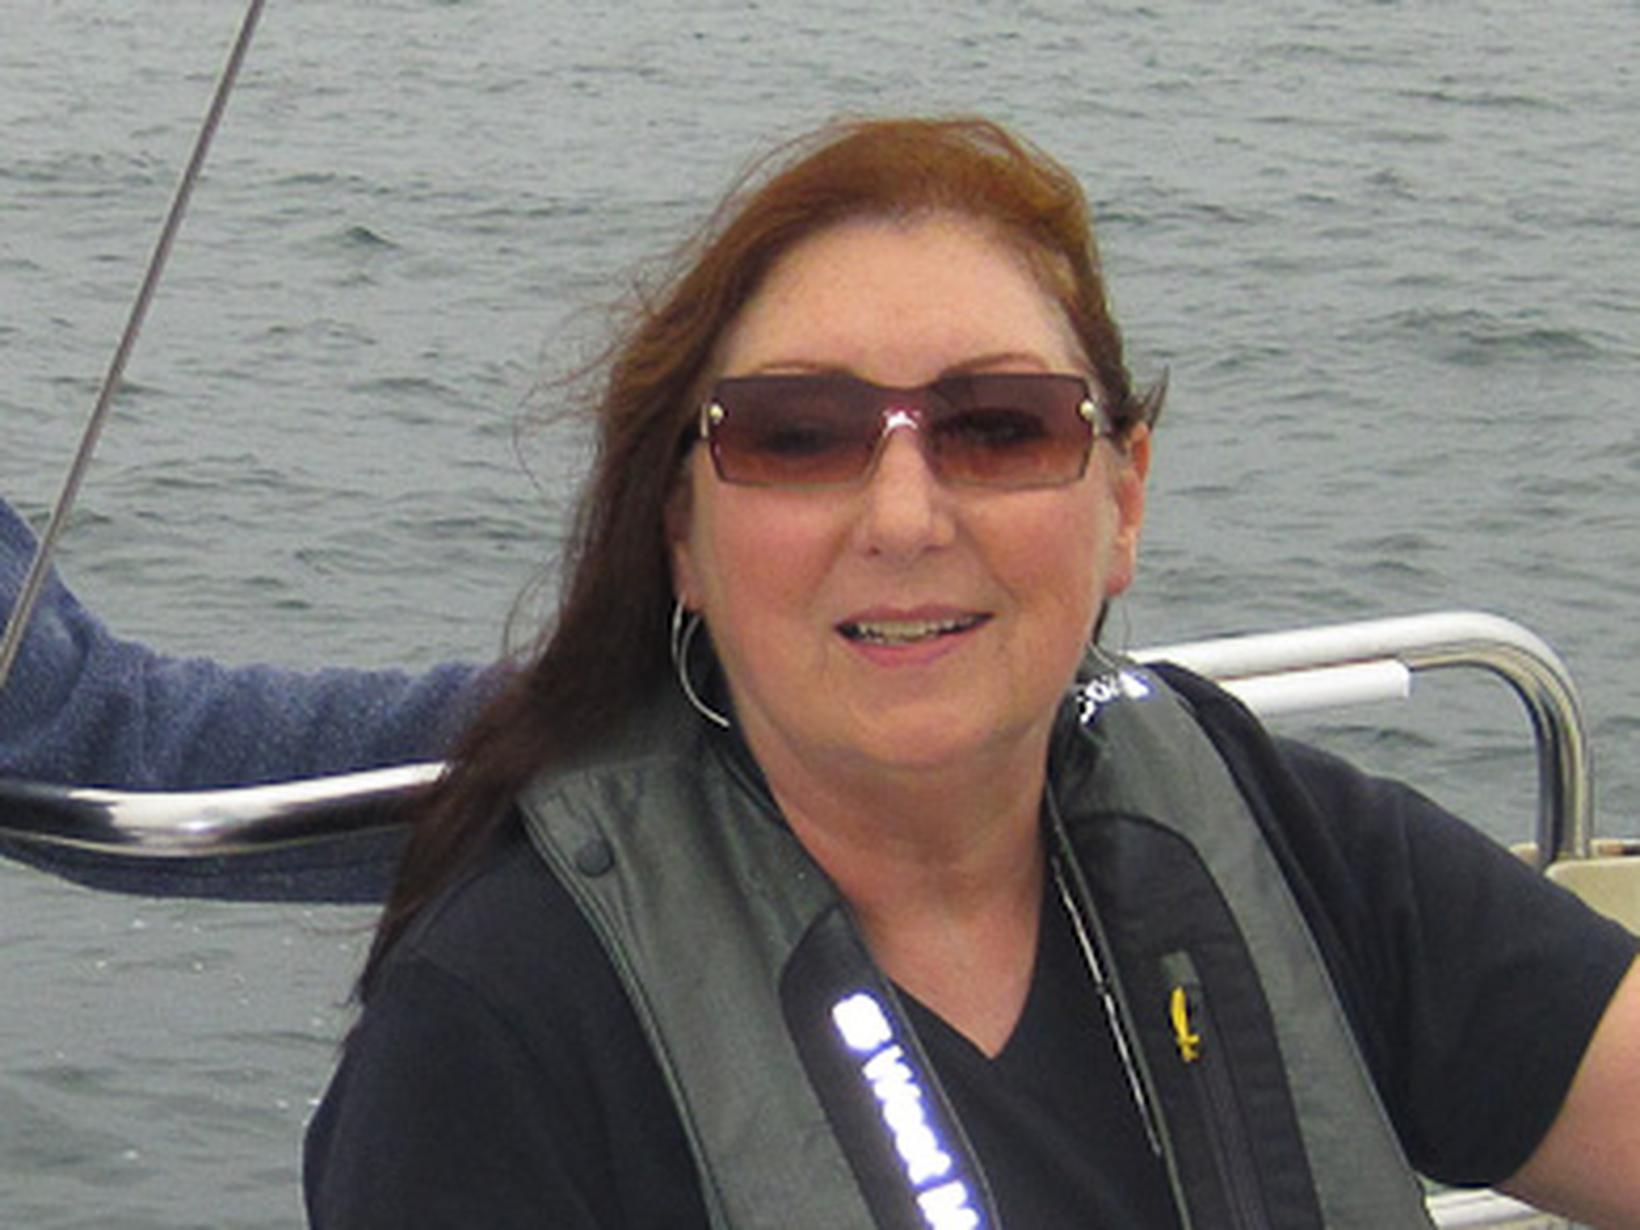 Evelyn from Channel Islands Beach, California, United States